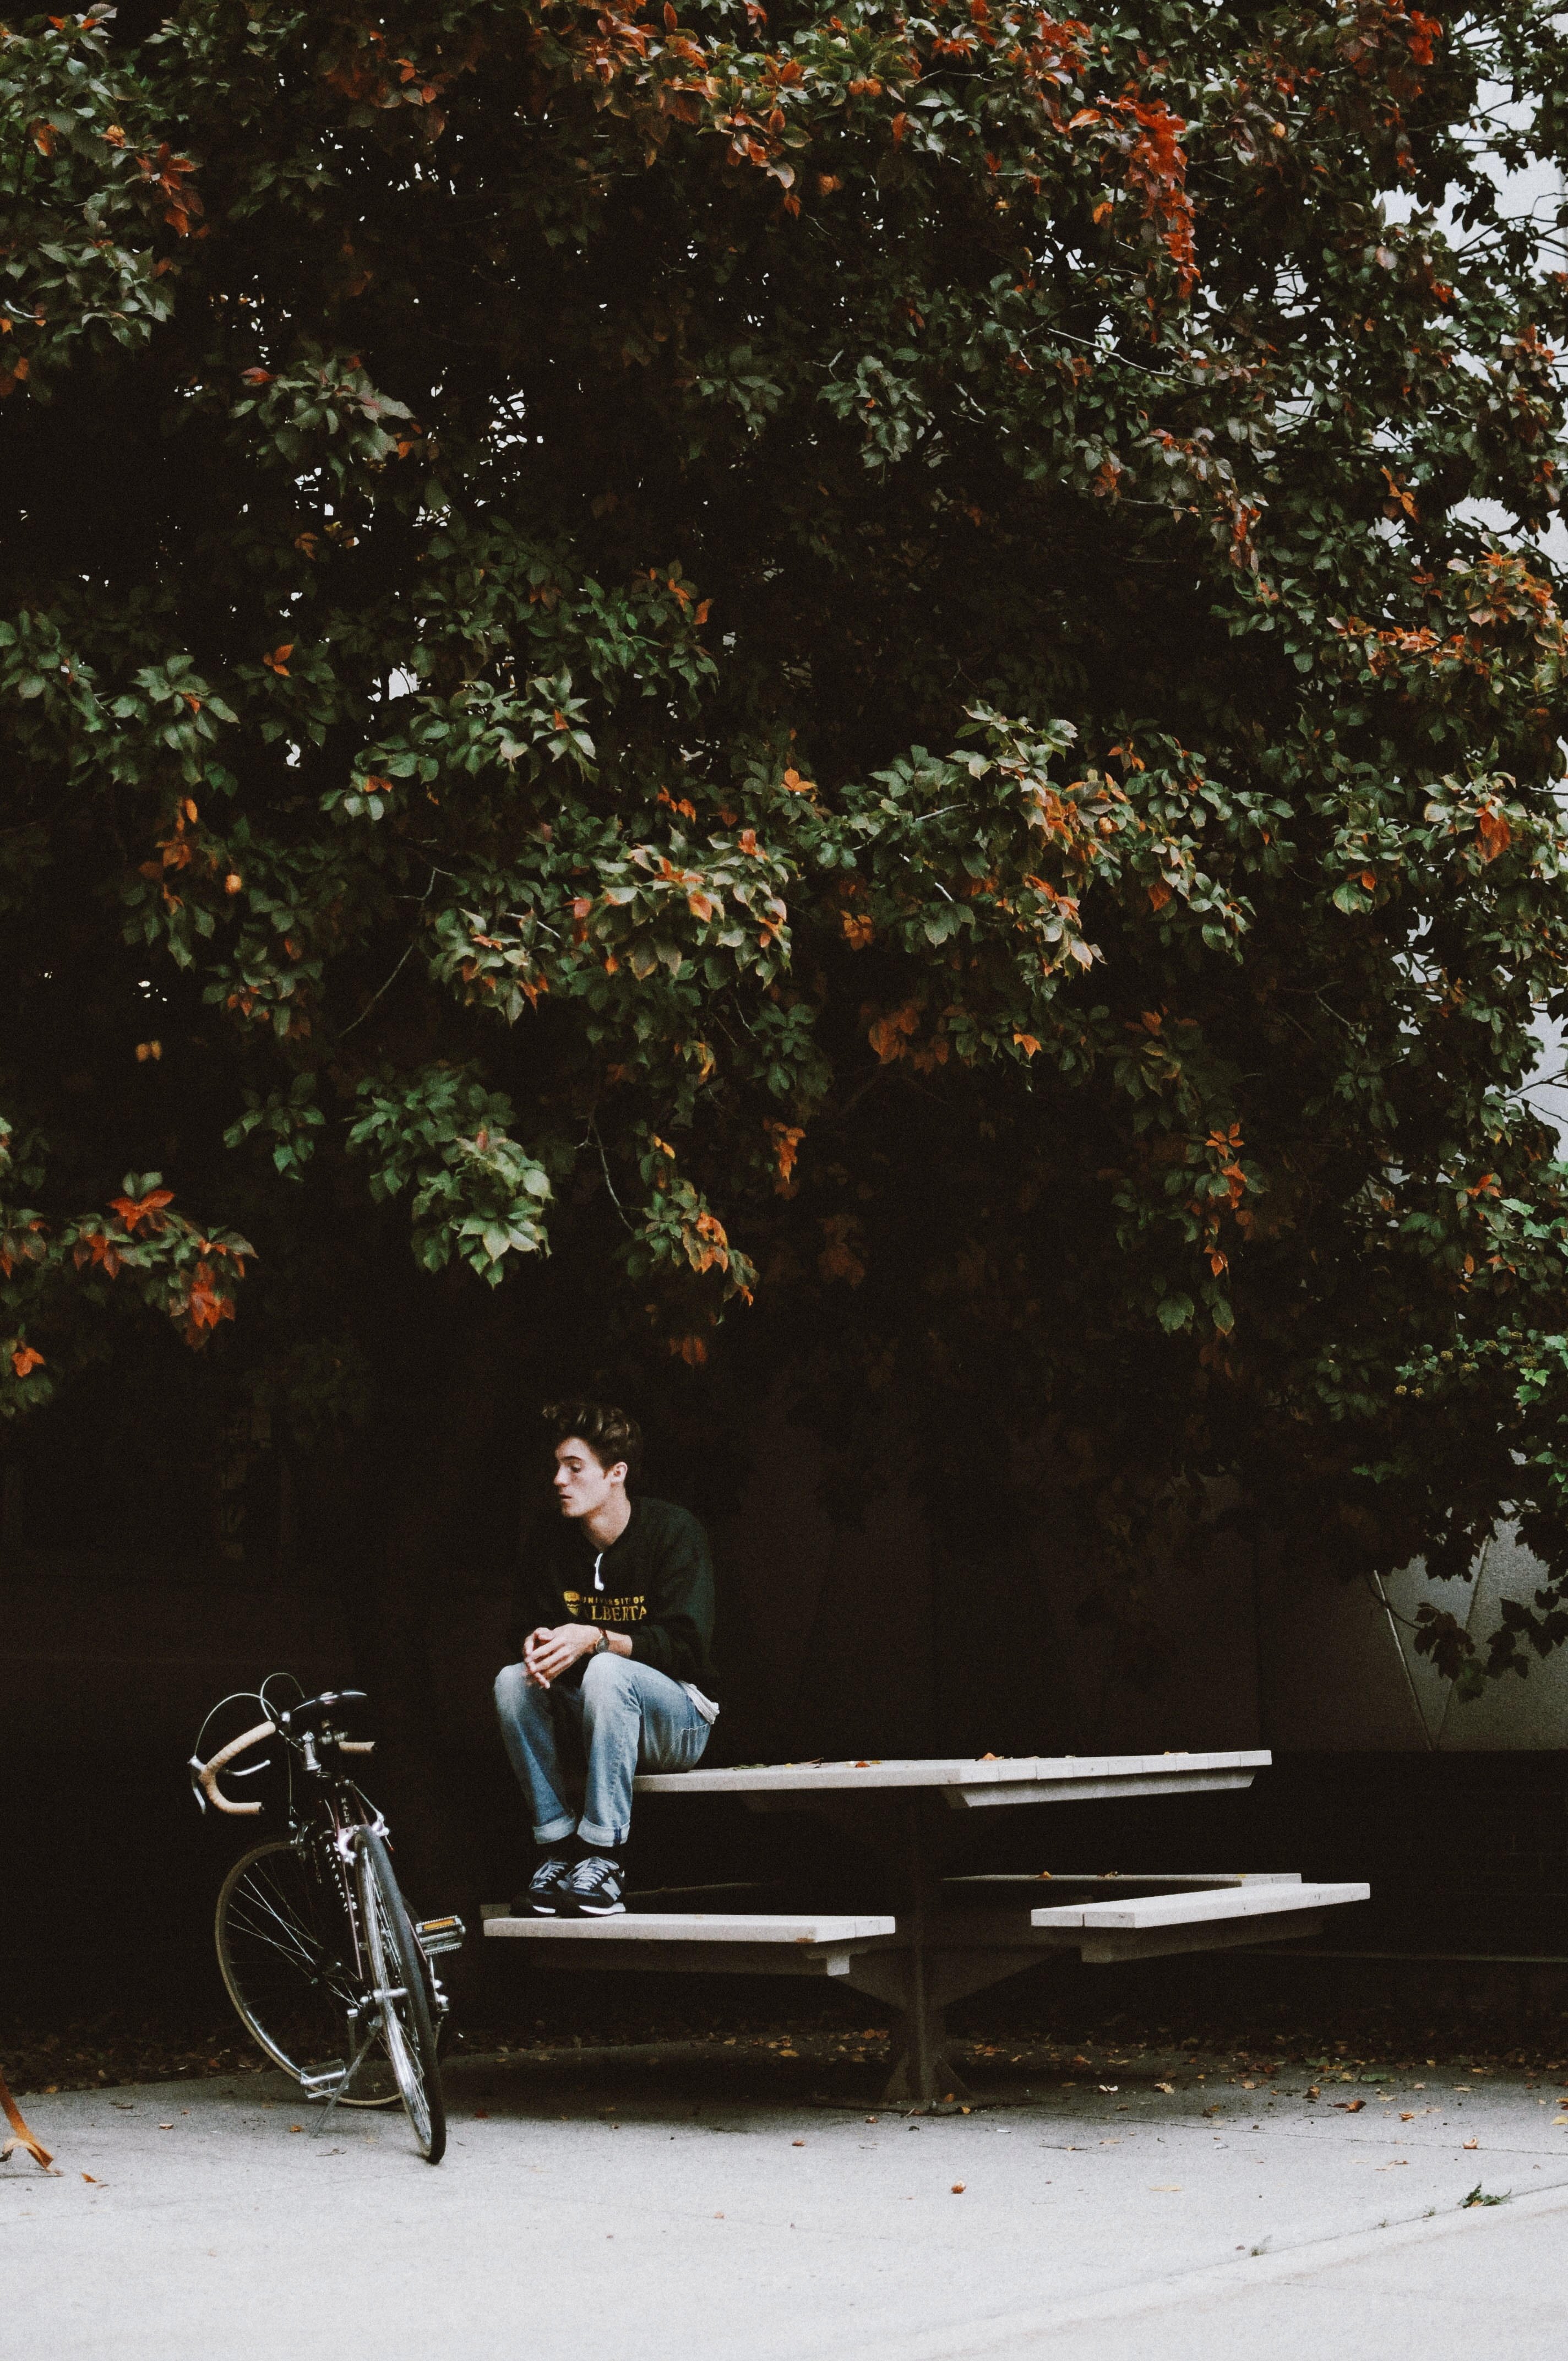 A person sitting on a picnic table next to his bicycle at the University of Alberta